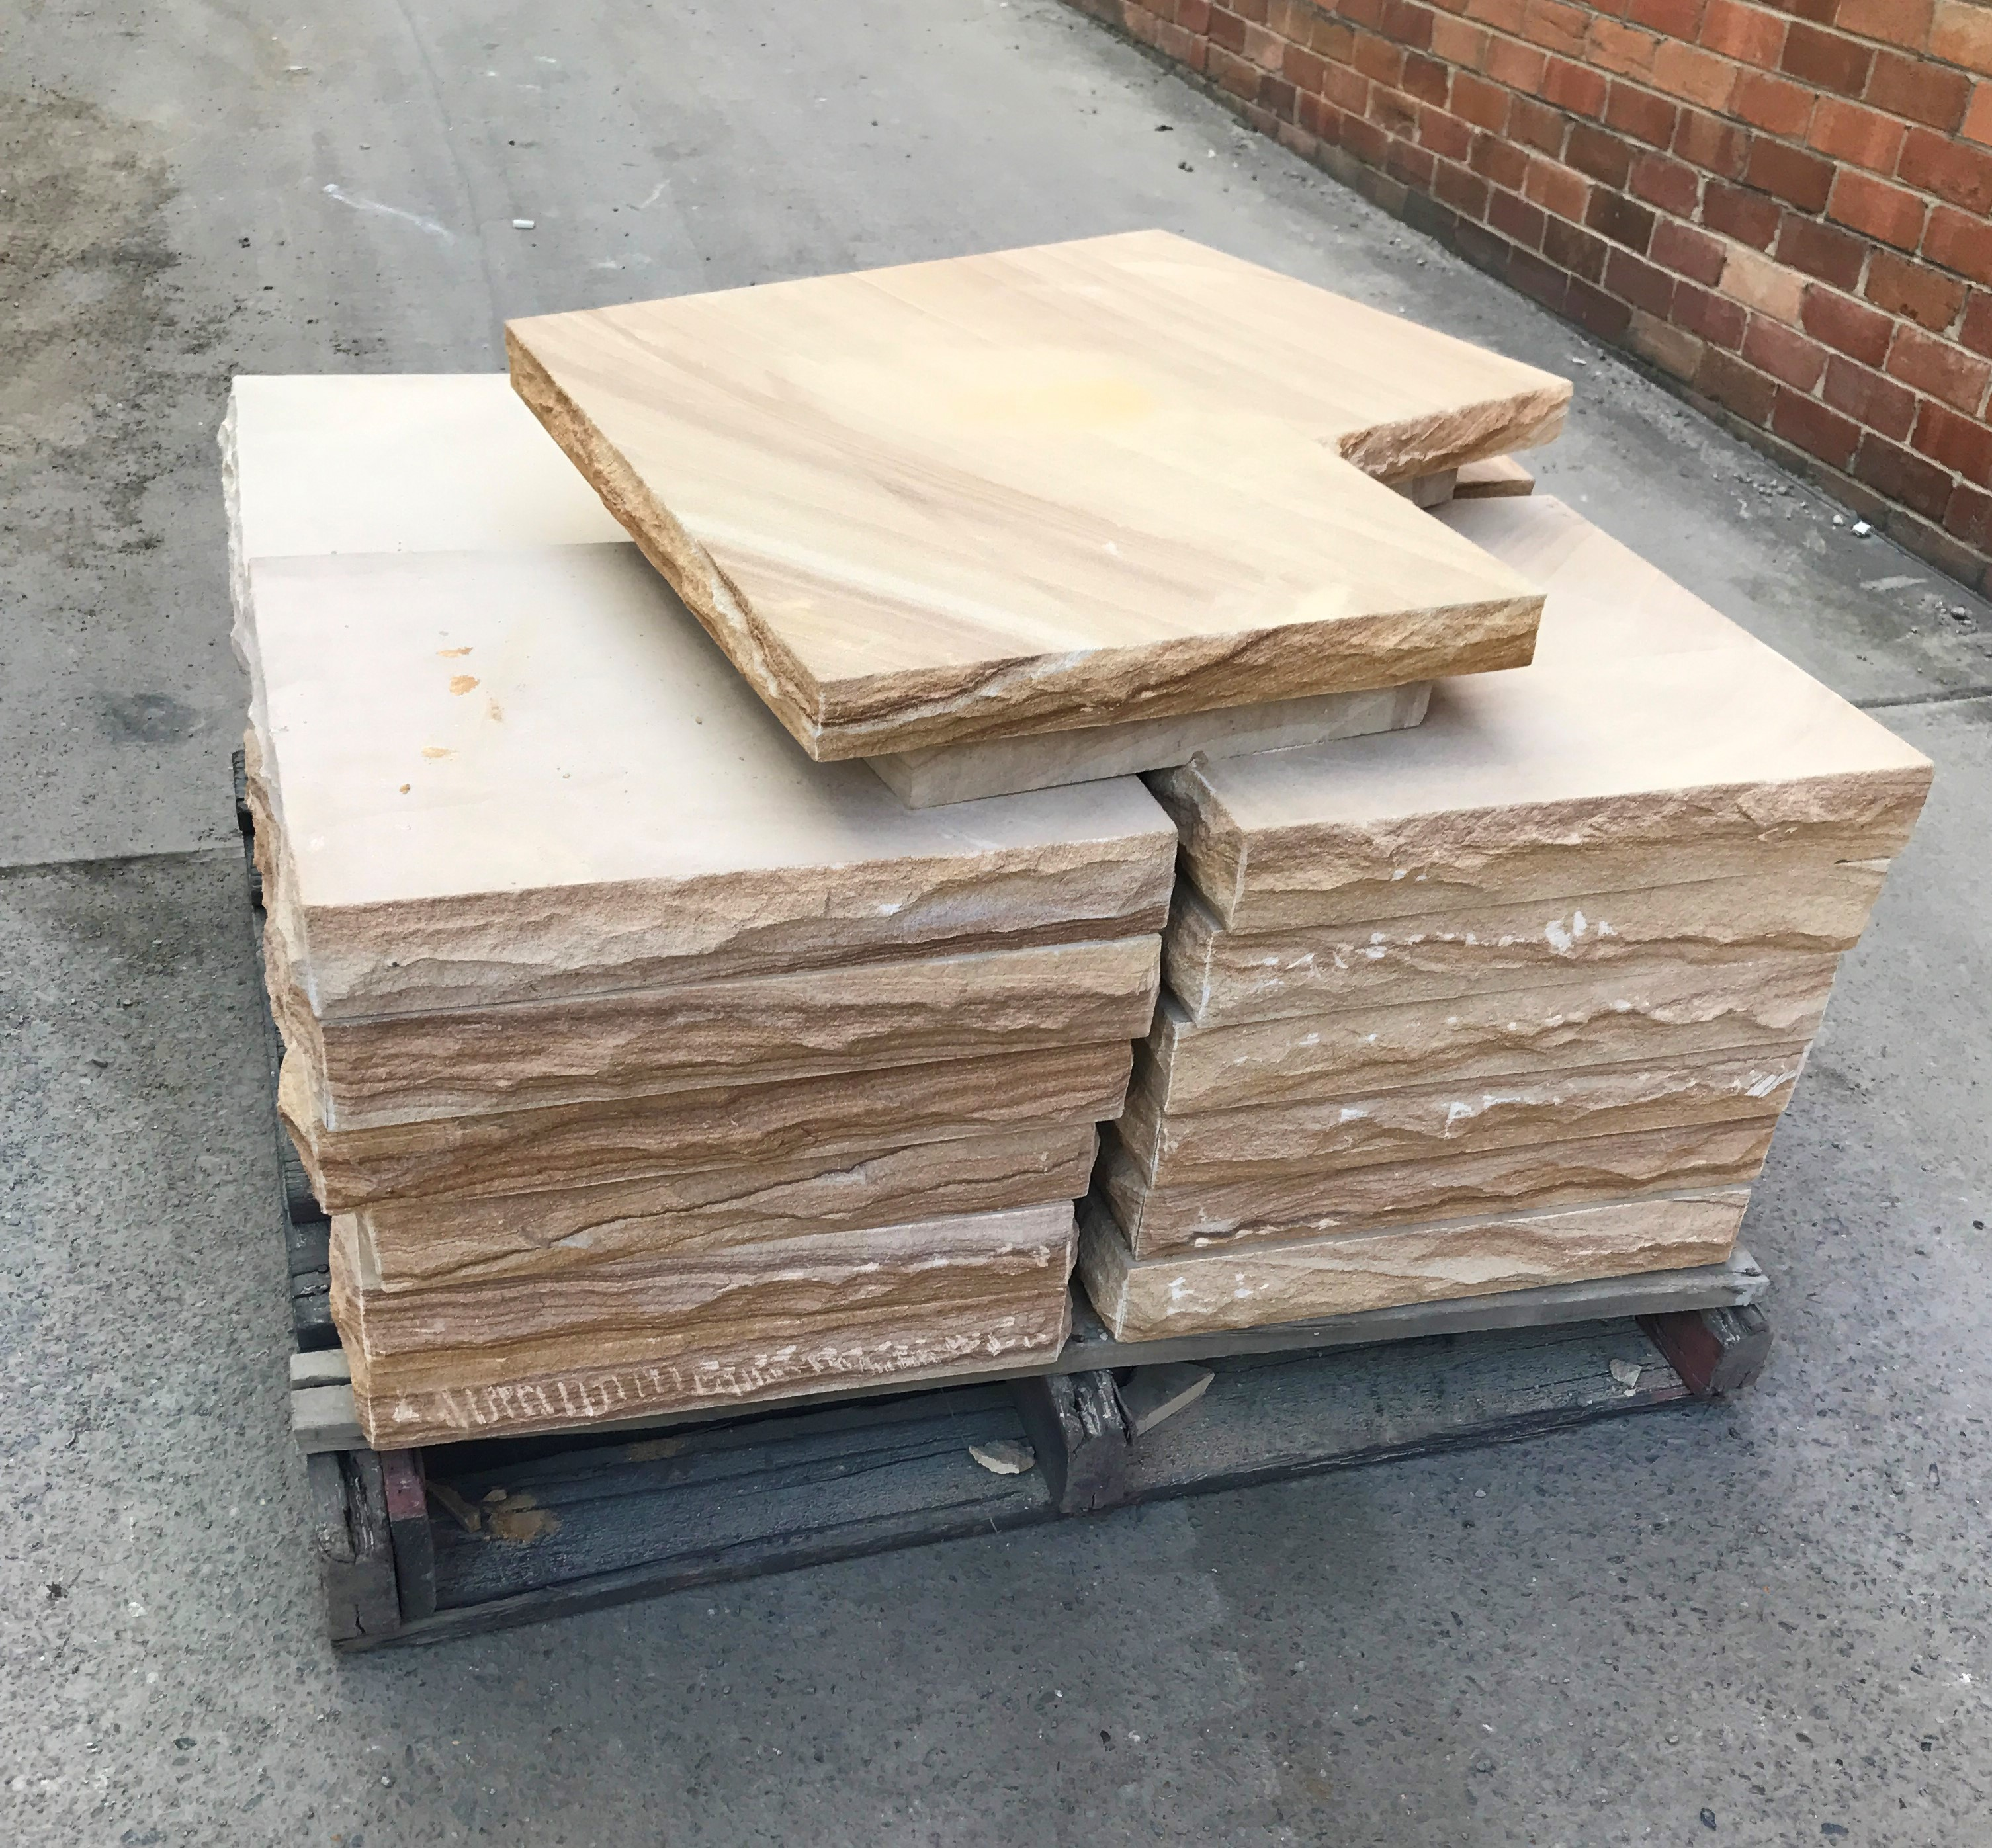 Stone caps in a pallet ready to be packed and shipped around Australian for commercial building projects